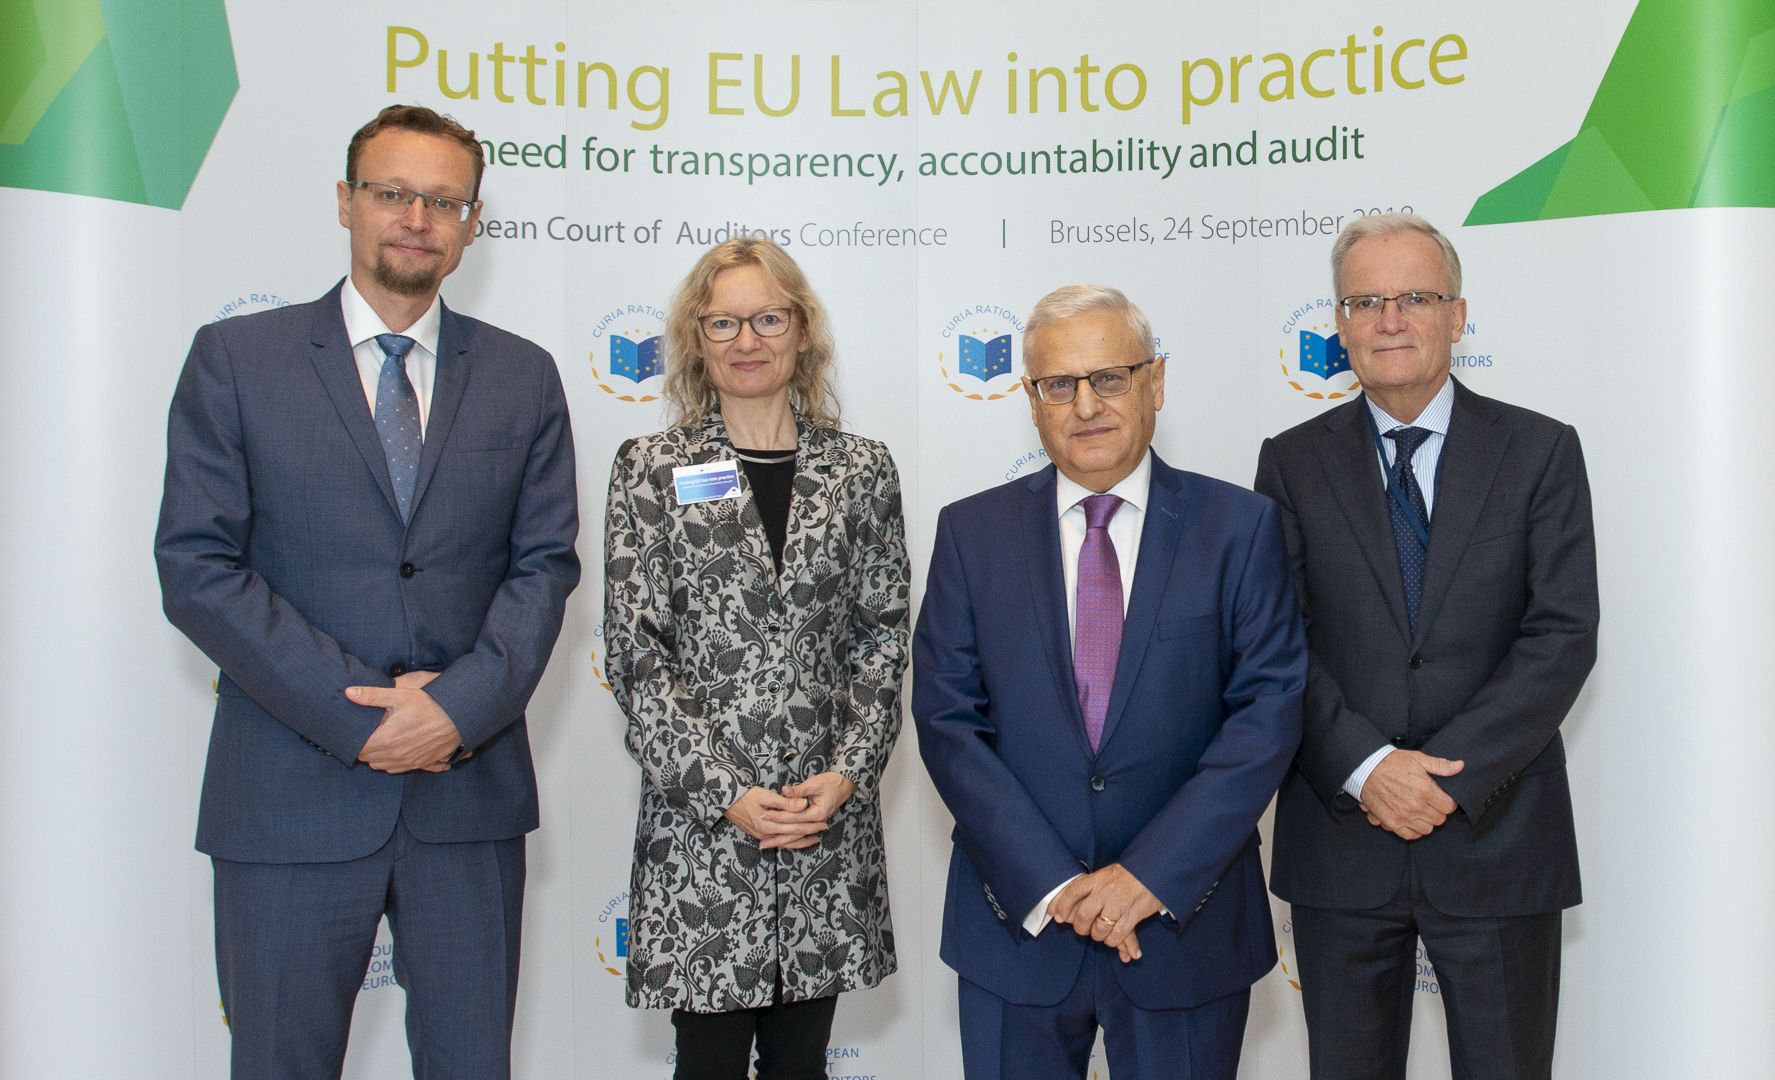 PUTTING EU LAW INTO PRACTICE CONFERENCE - Jan M. Passer, Judge, CJEU; Gerda Falkner, Professor of Political Science & Director, Vienna University; Leo Brincat, Reporting Member, ECA; Bernd Dittmann, Member, EESC.